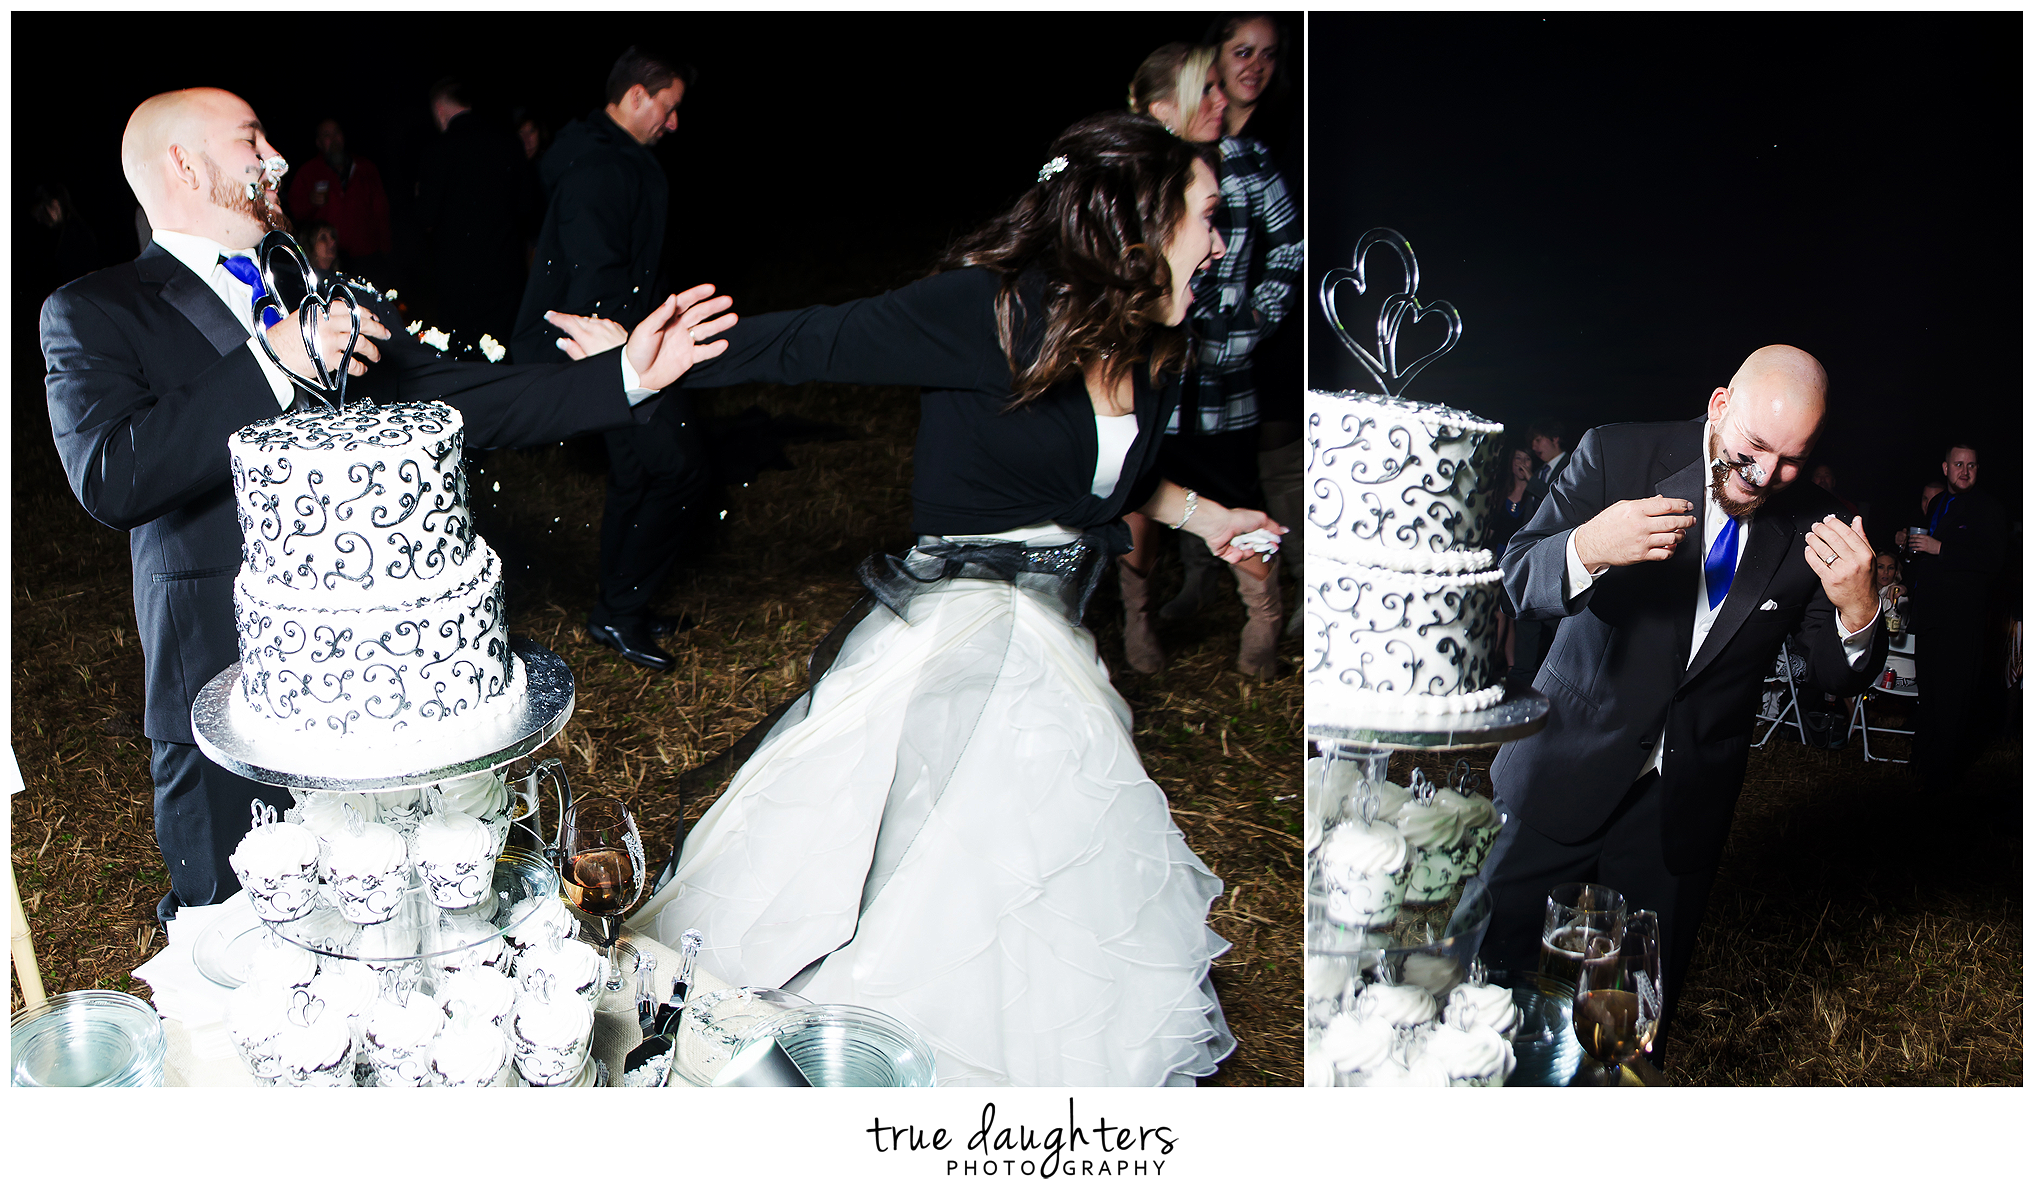 True_Daughters_Photography_Campitelli_Wedding-43.png